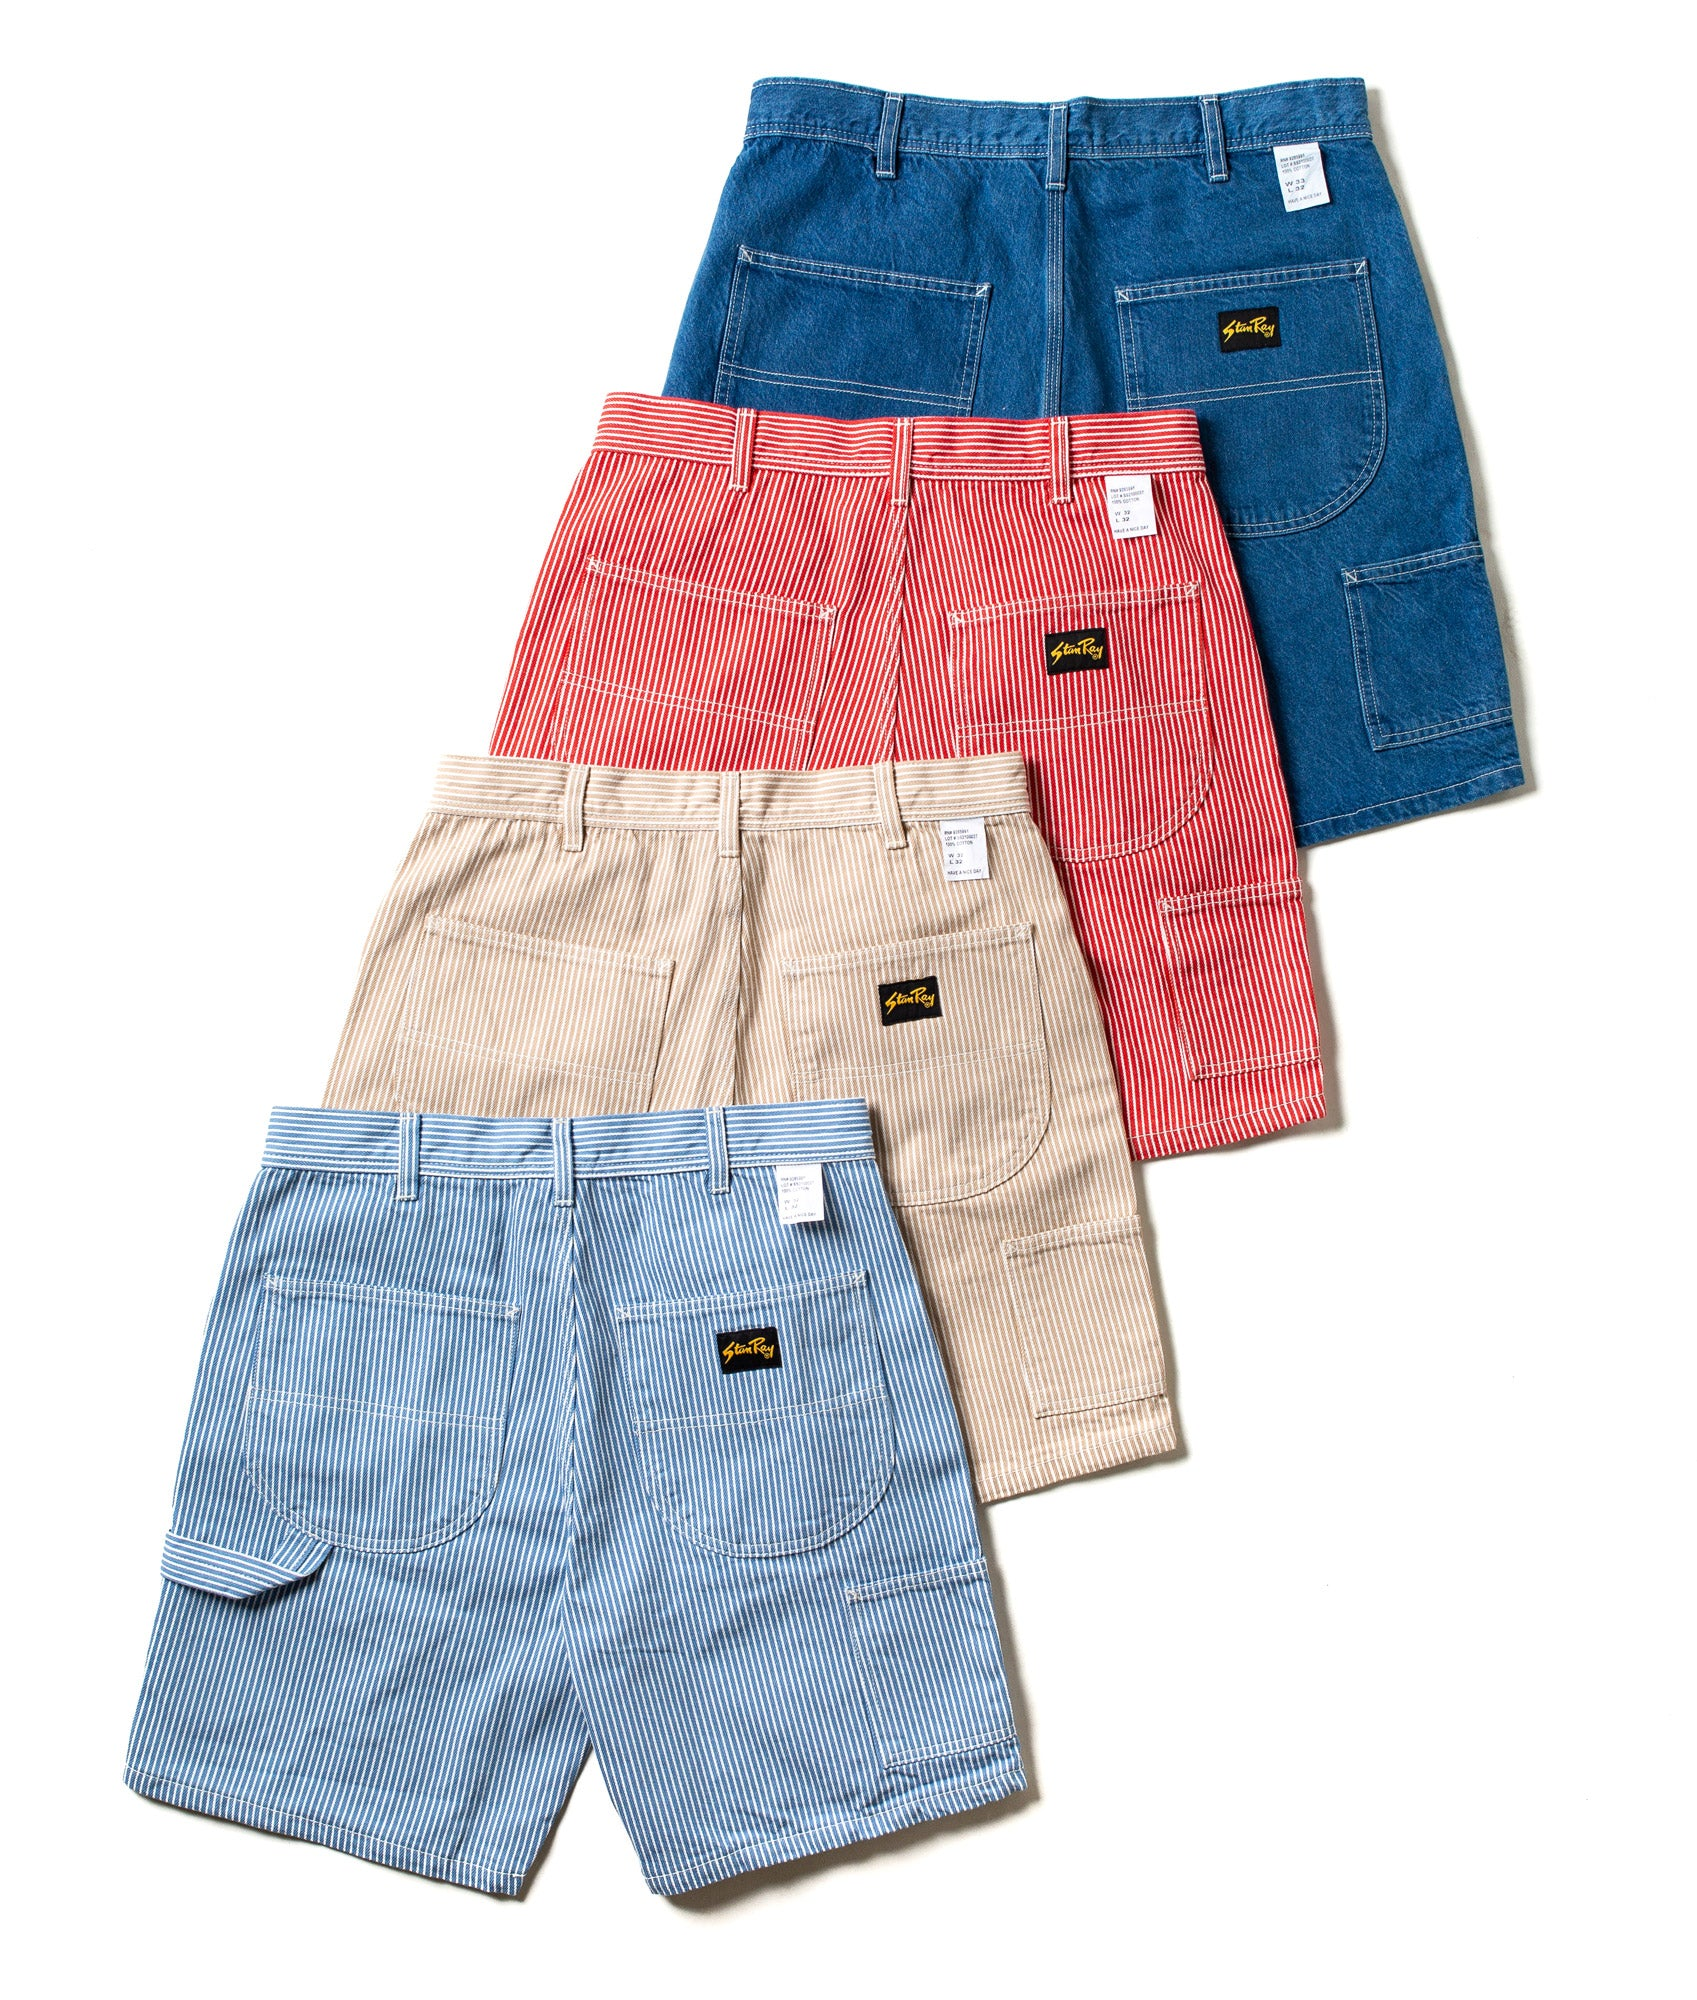 Stan Ray painter shorts in seasonal colours